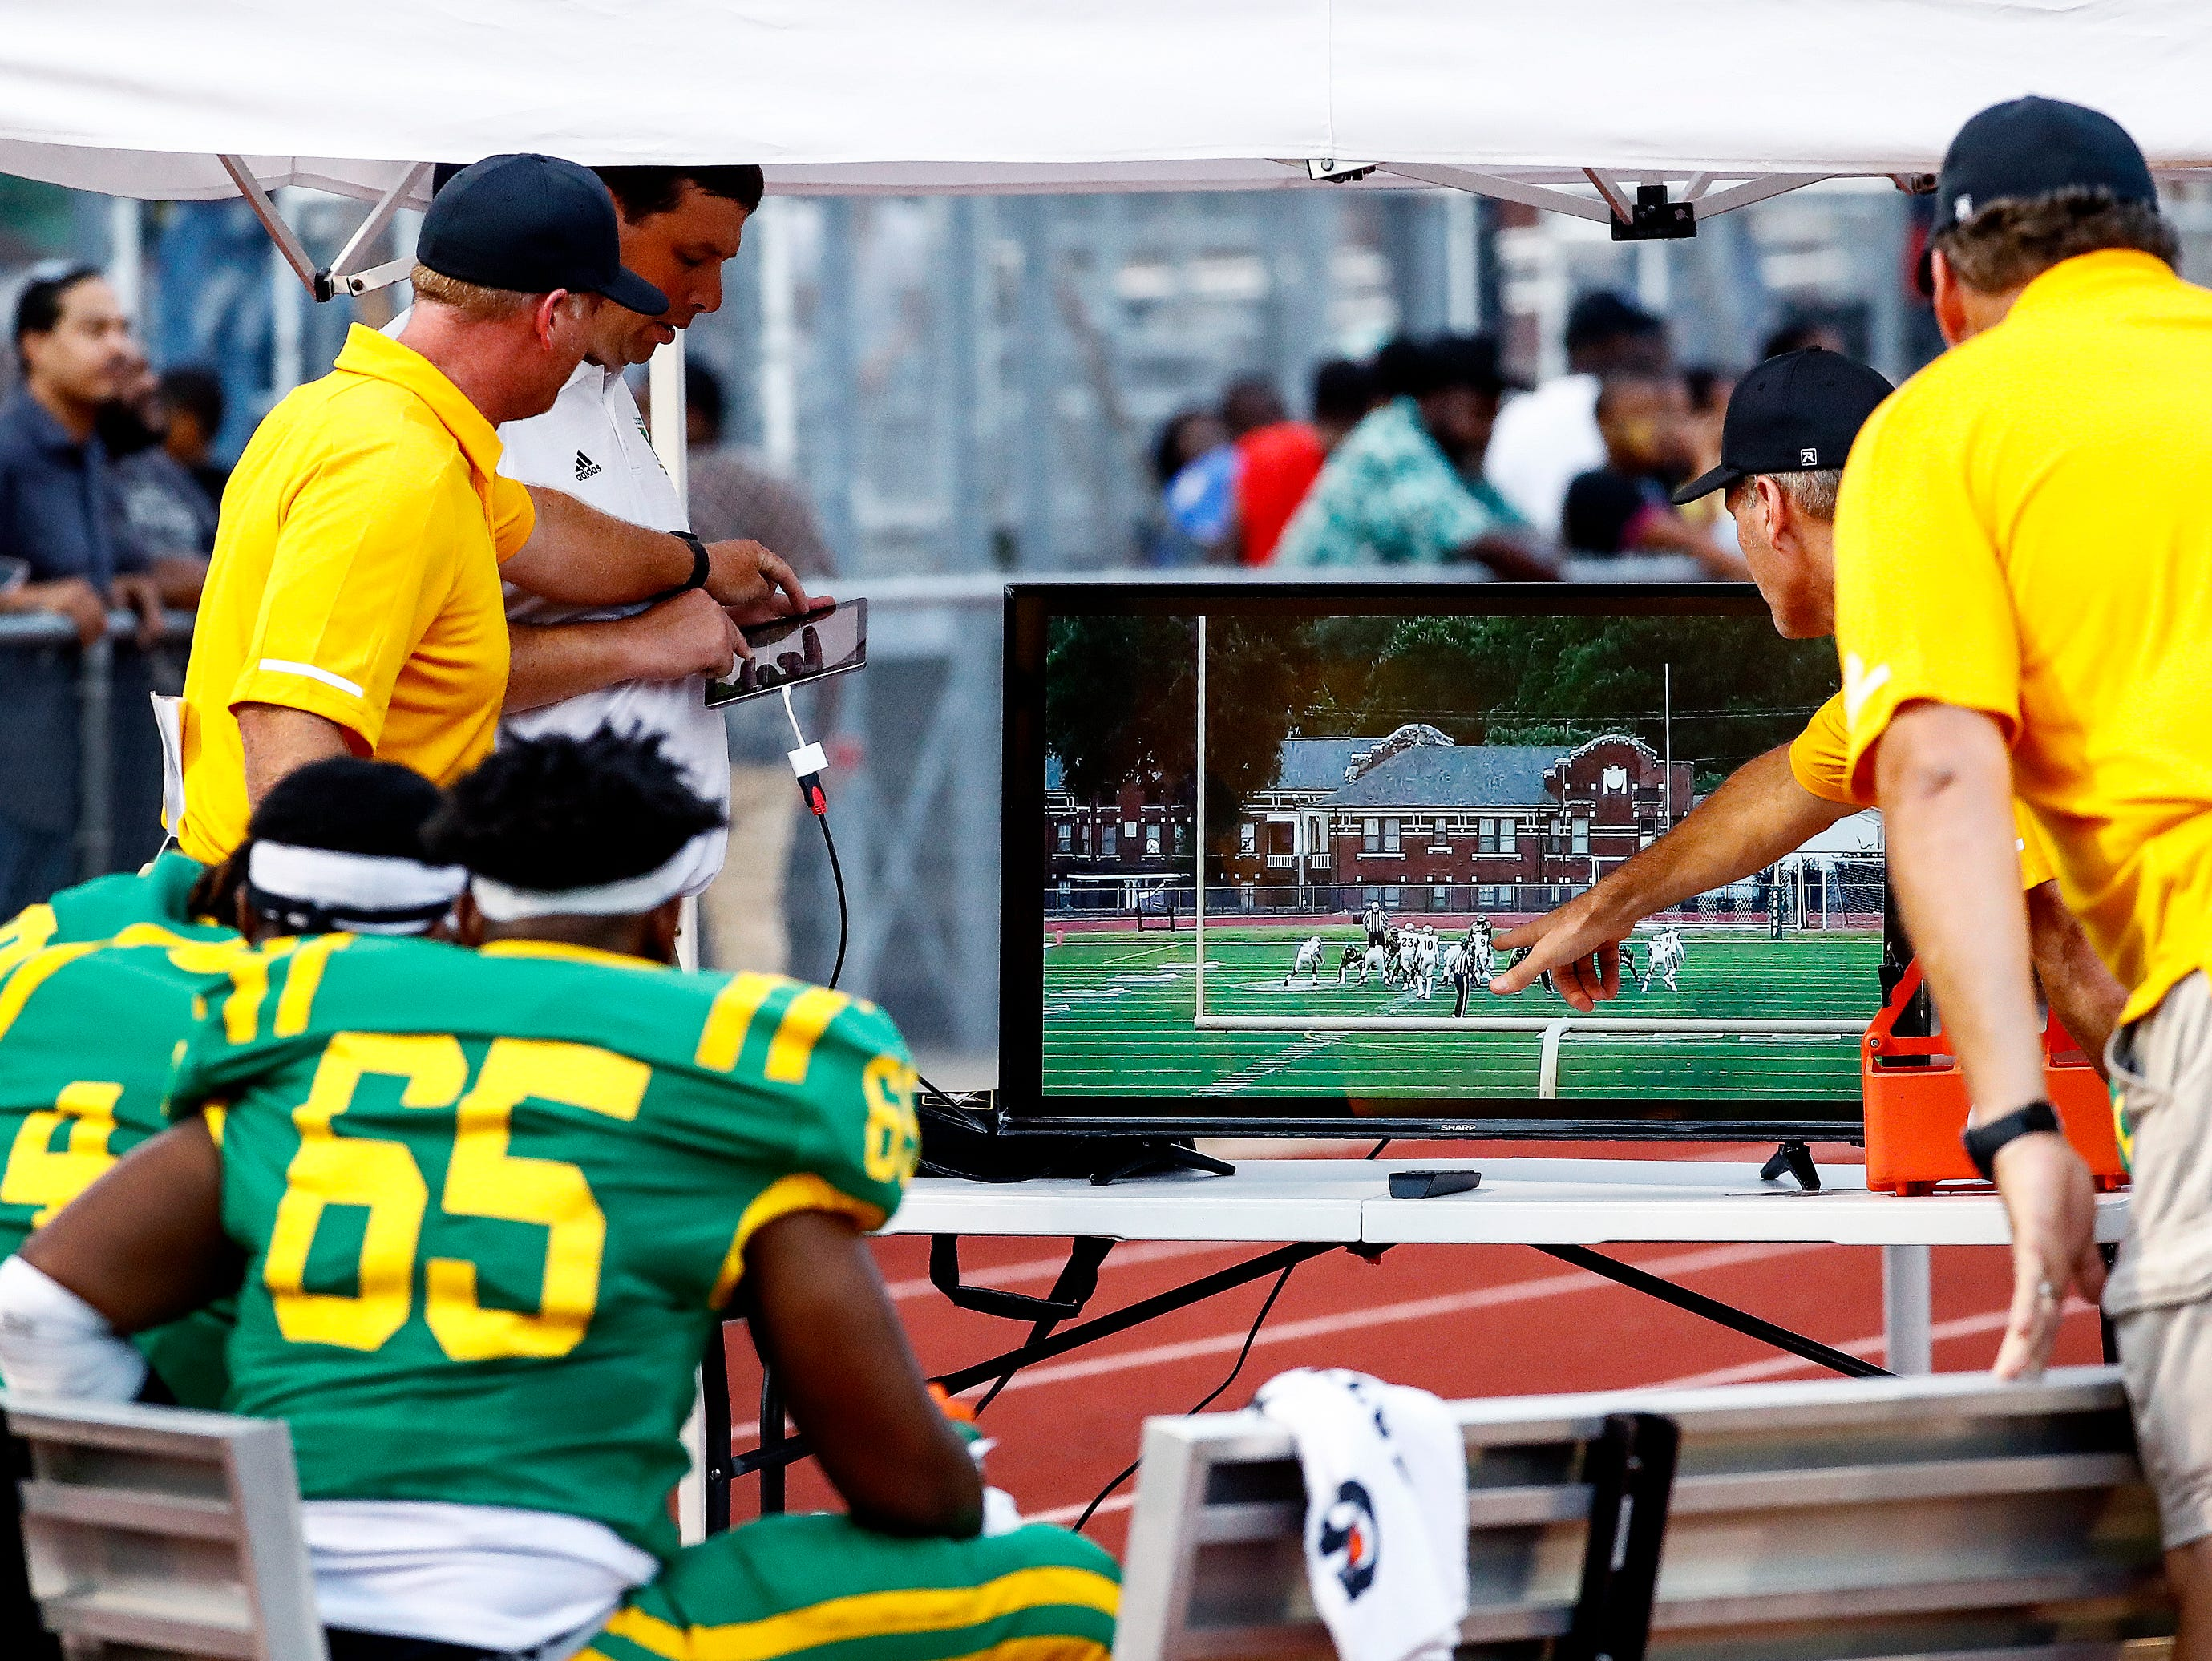 Central coaches go over footage of defenses action on the sidelines during the season opener against Melrose on Friday, Aug. 17, 2018, at Crump Stadium.